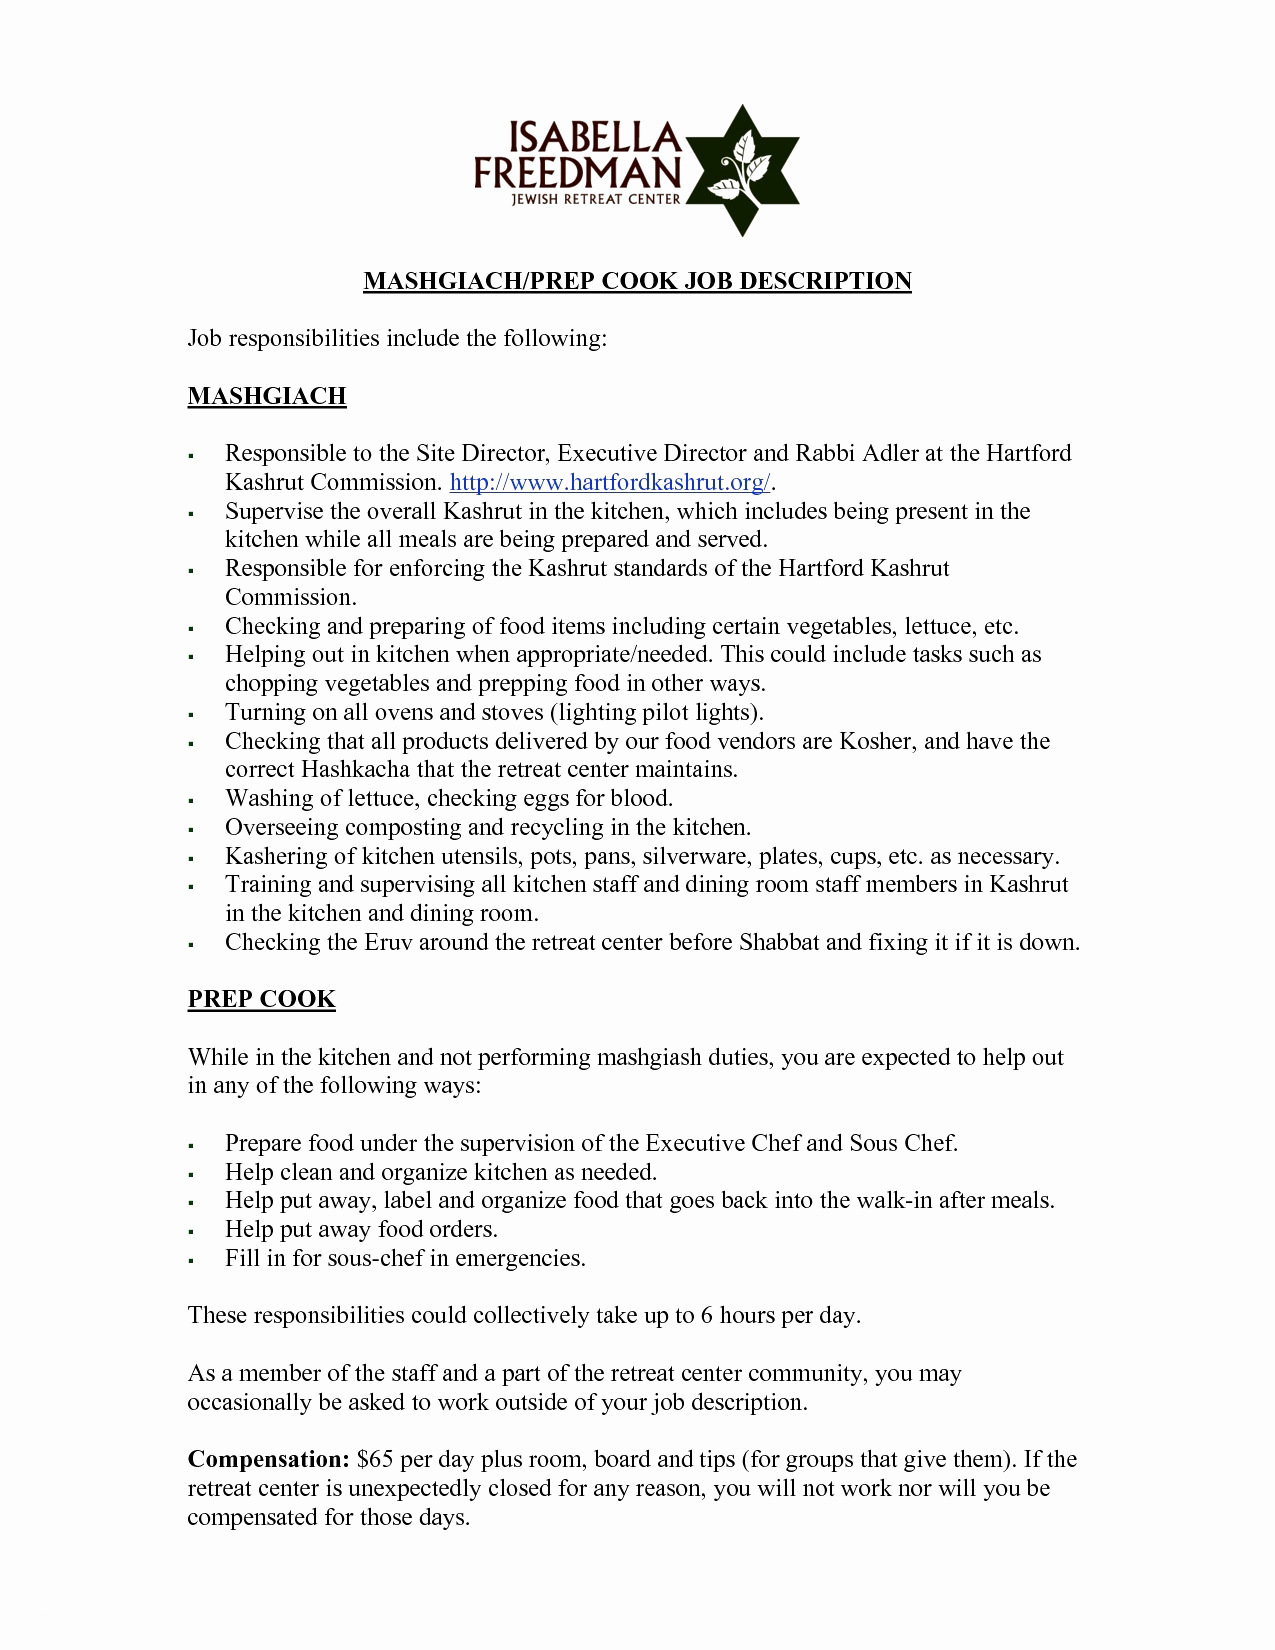 Marketing Letter Template Free - Resume Cover Letter Template Free Inspirational Resume and Cover